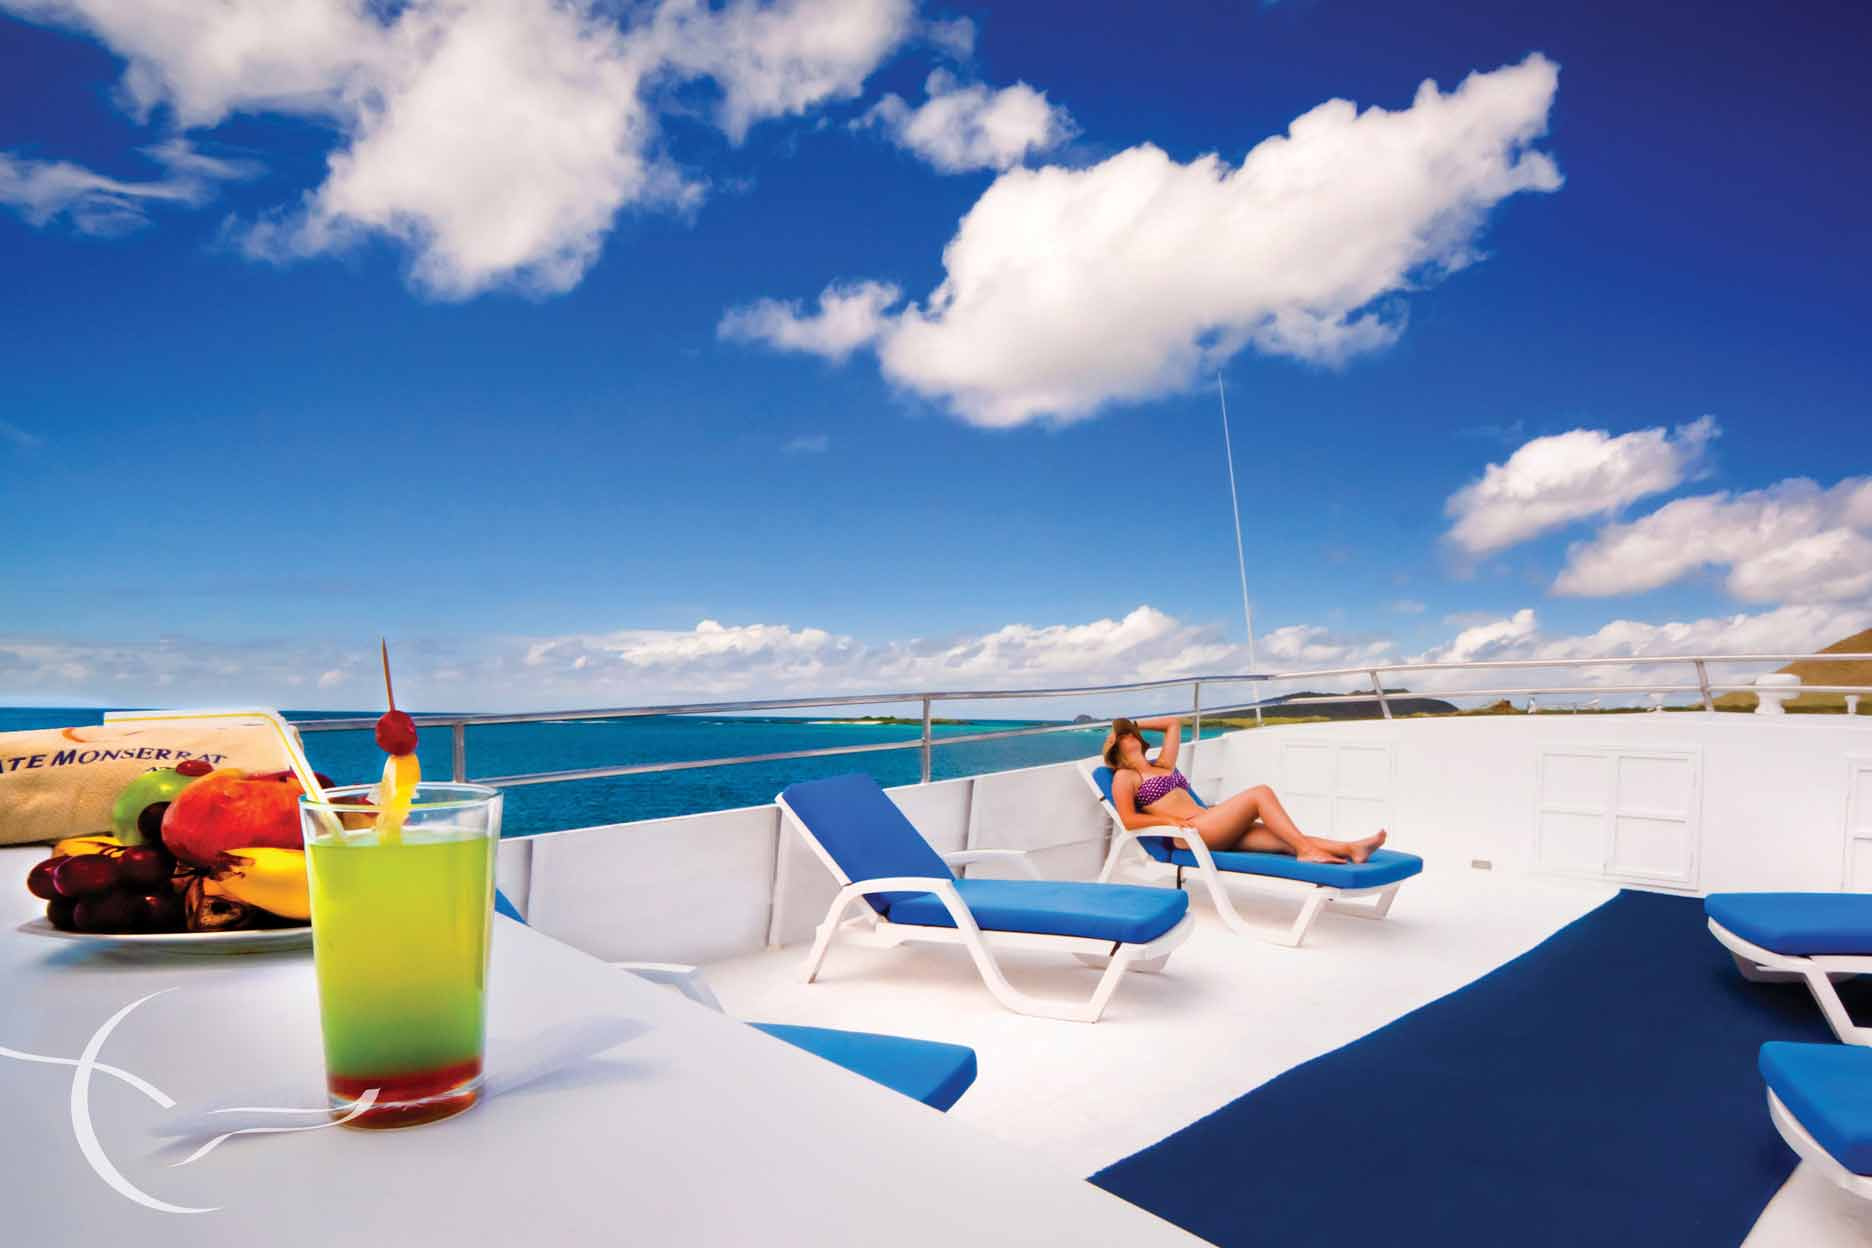 Sun deck in monserrat cruise ship galapagos